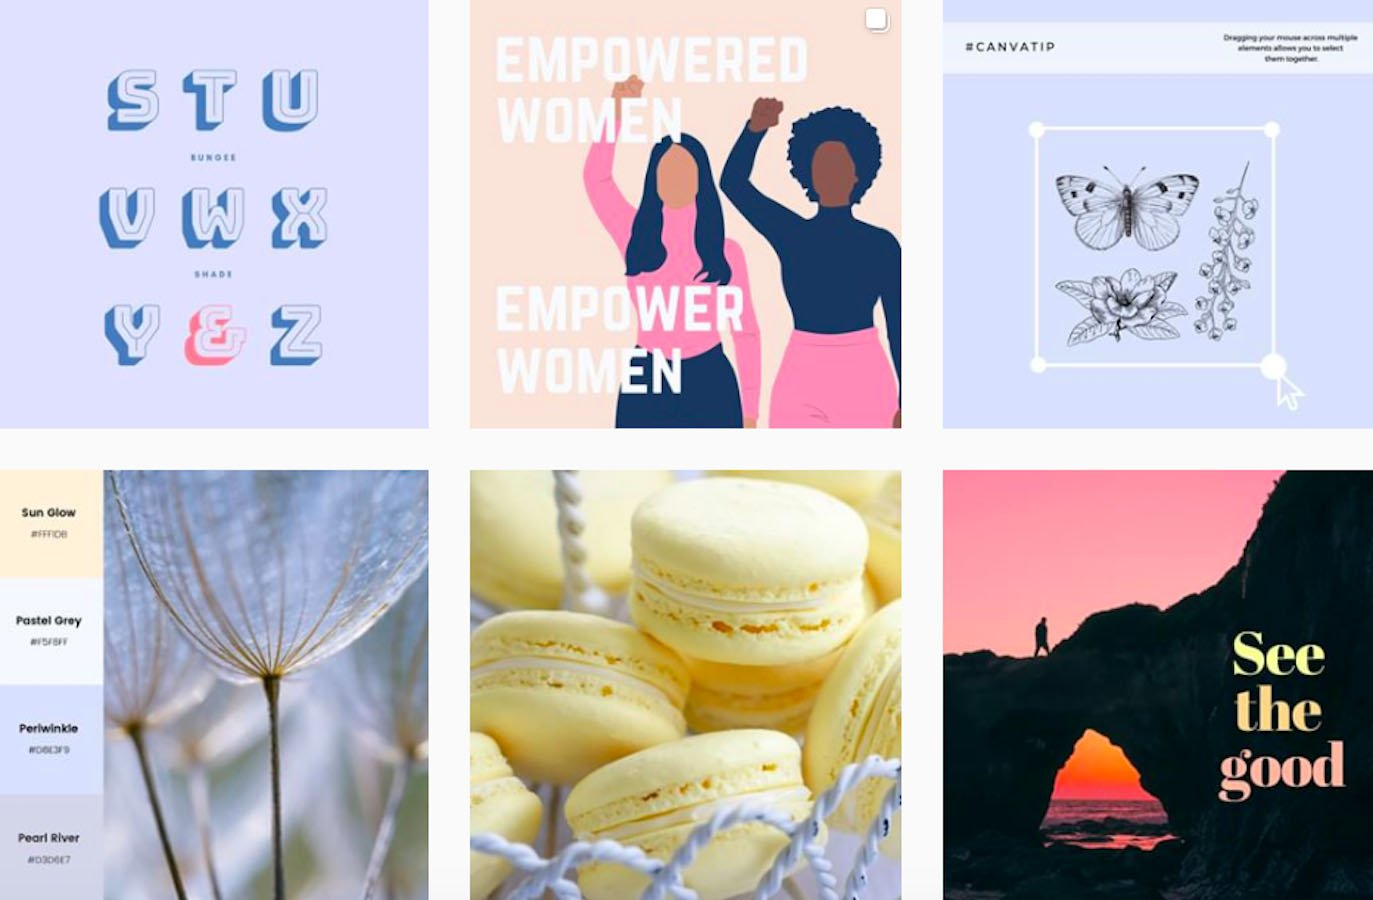 Web Design Inspiration: 110+ Accounts On Instagram and 10+ Best UX & Web Design Books in 2020 - canva